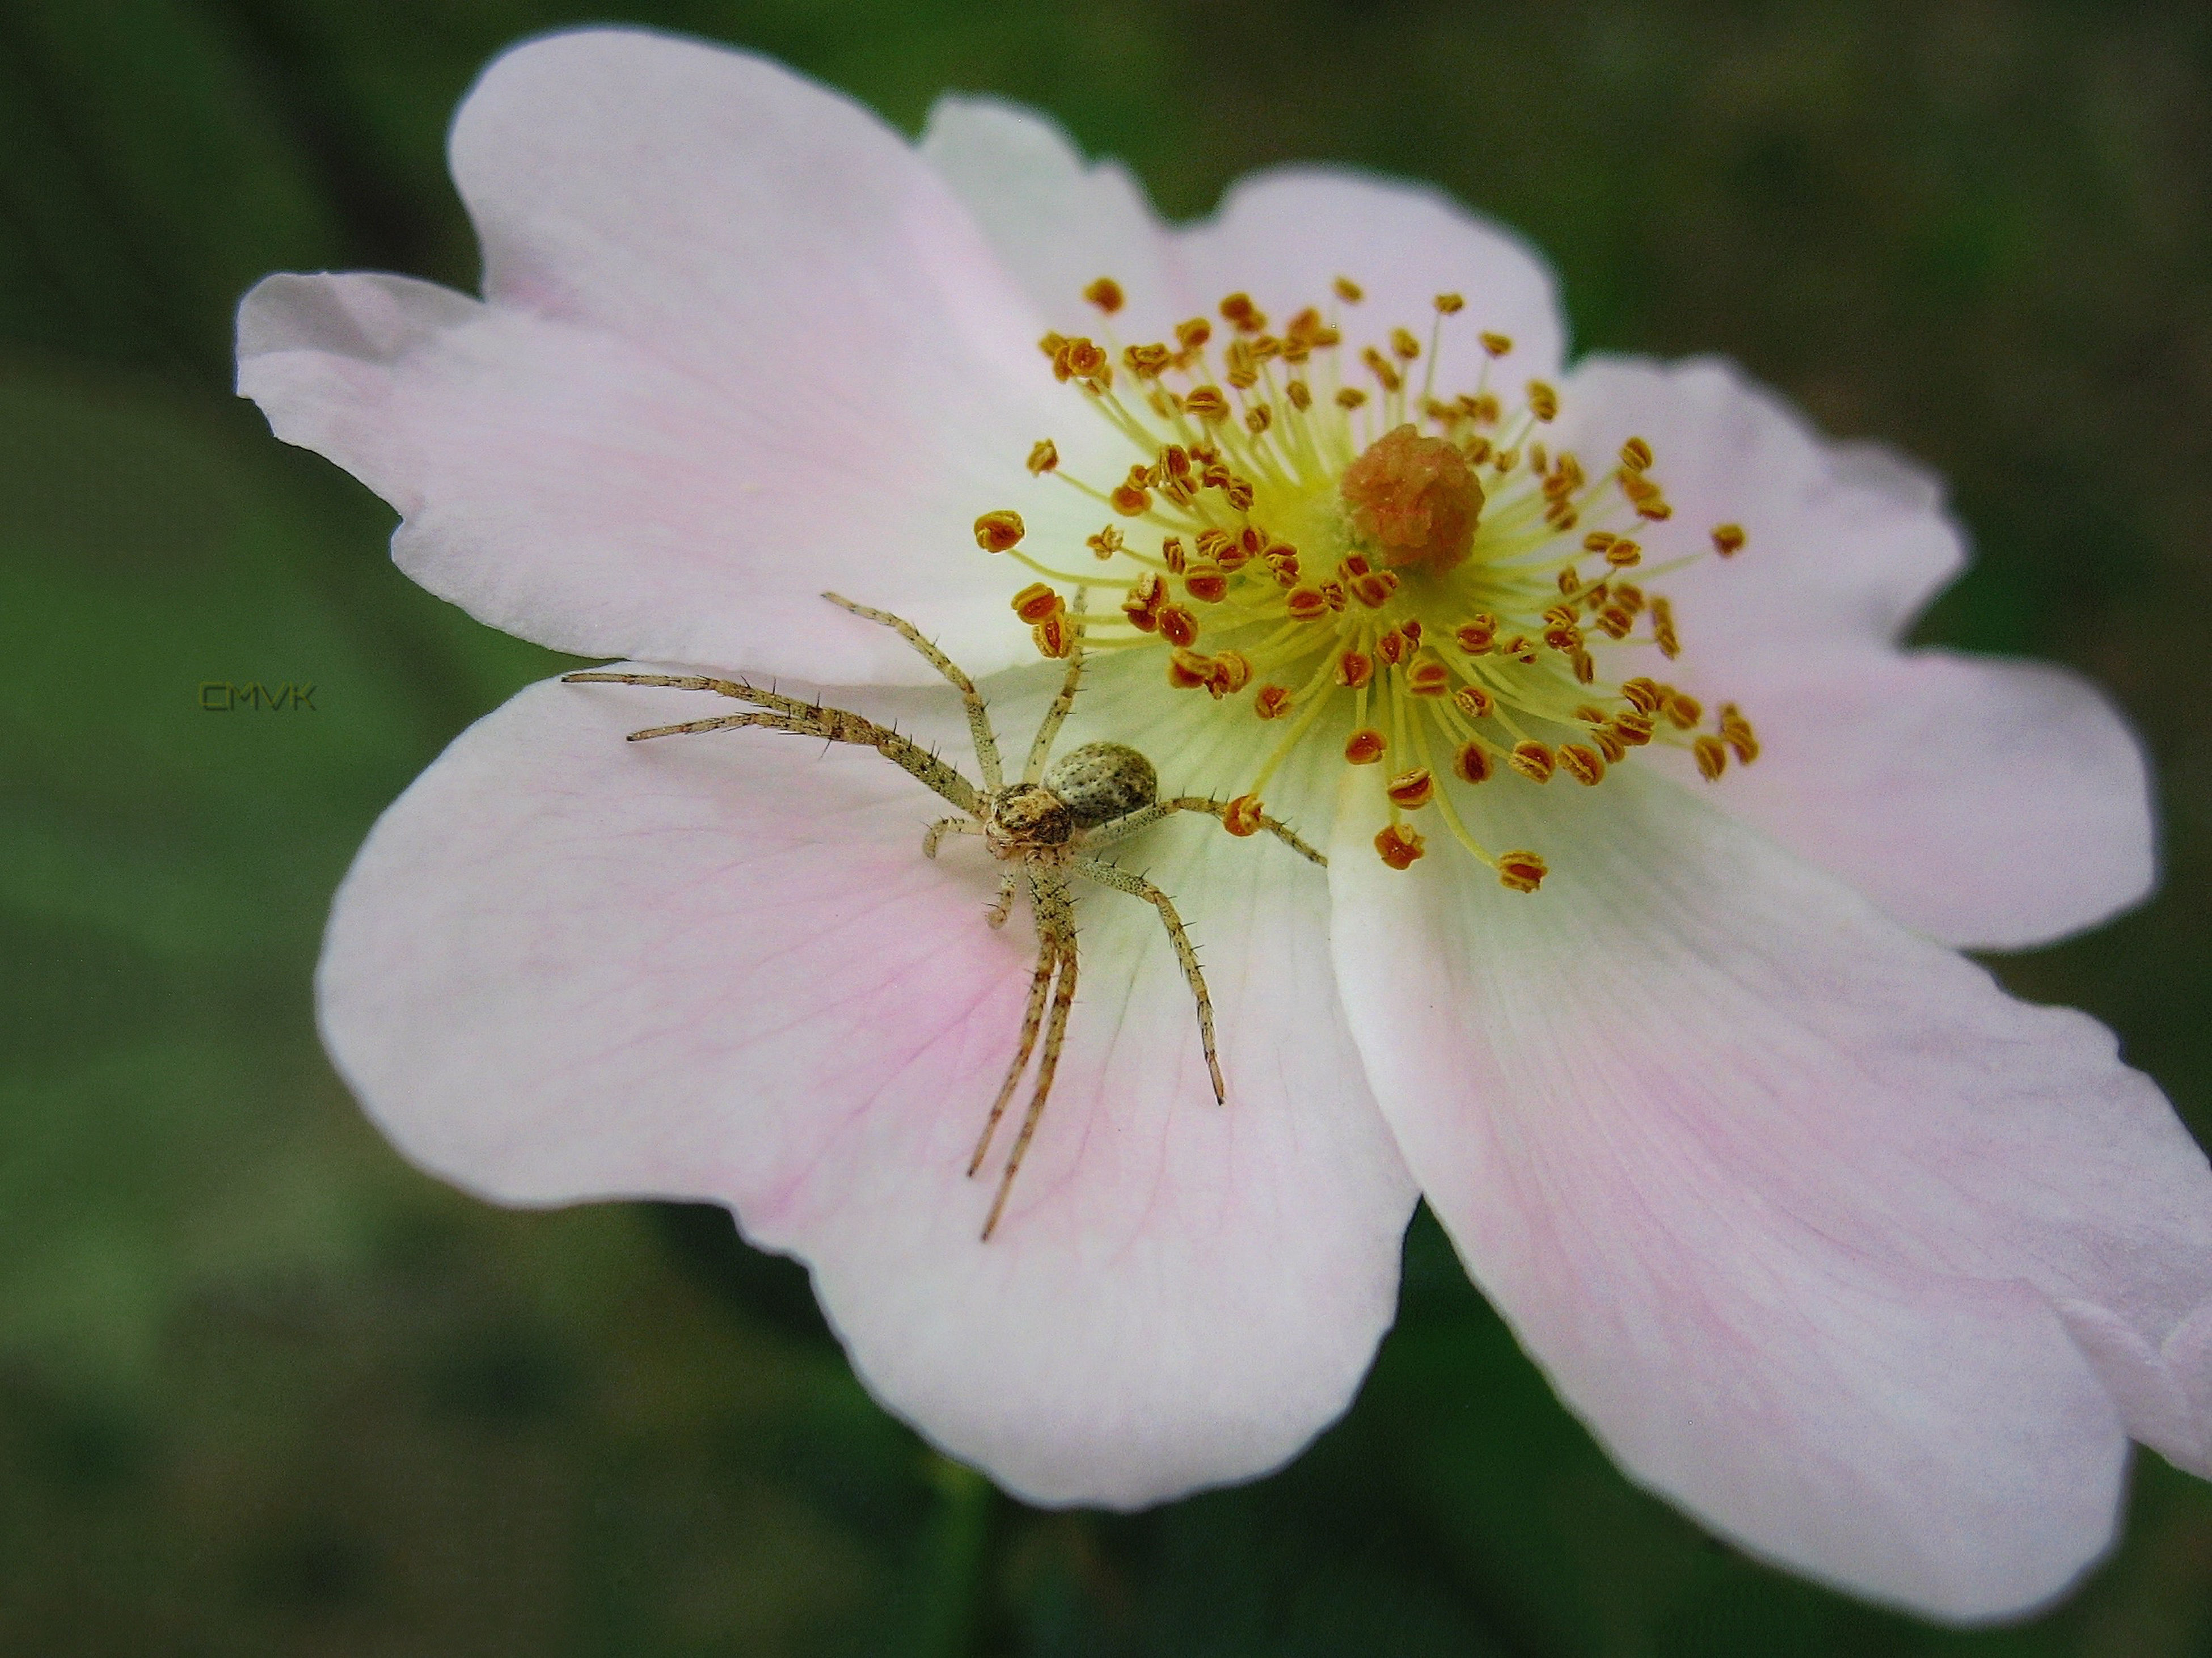 flower, petal, freshness, fragility, flower head, close-up, growth, beauty in nature, single flower, nature, pollen, stamen, focus on foreground, blooming, pink color, white color, in bloom, blossom, selective focus, plant